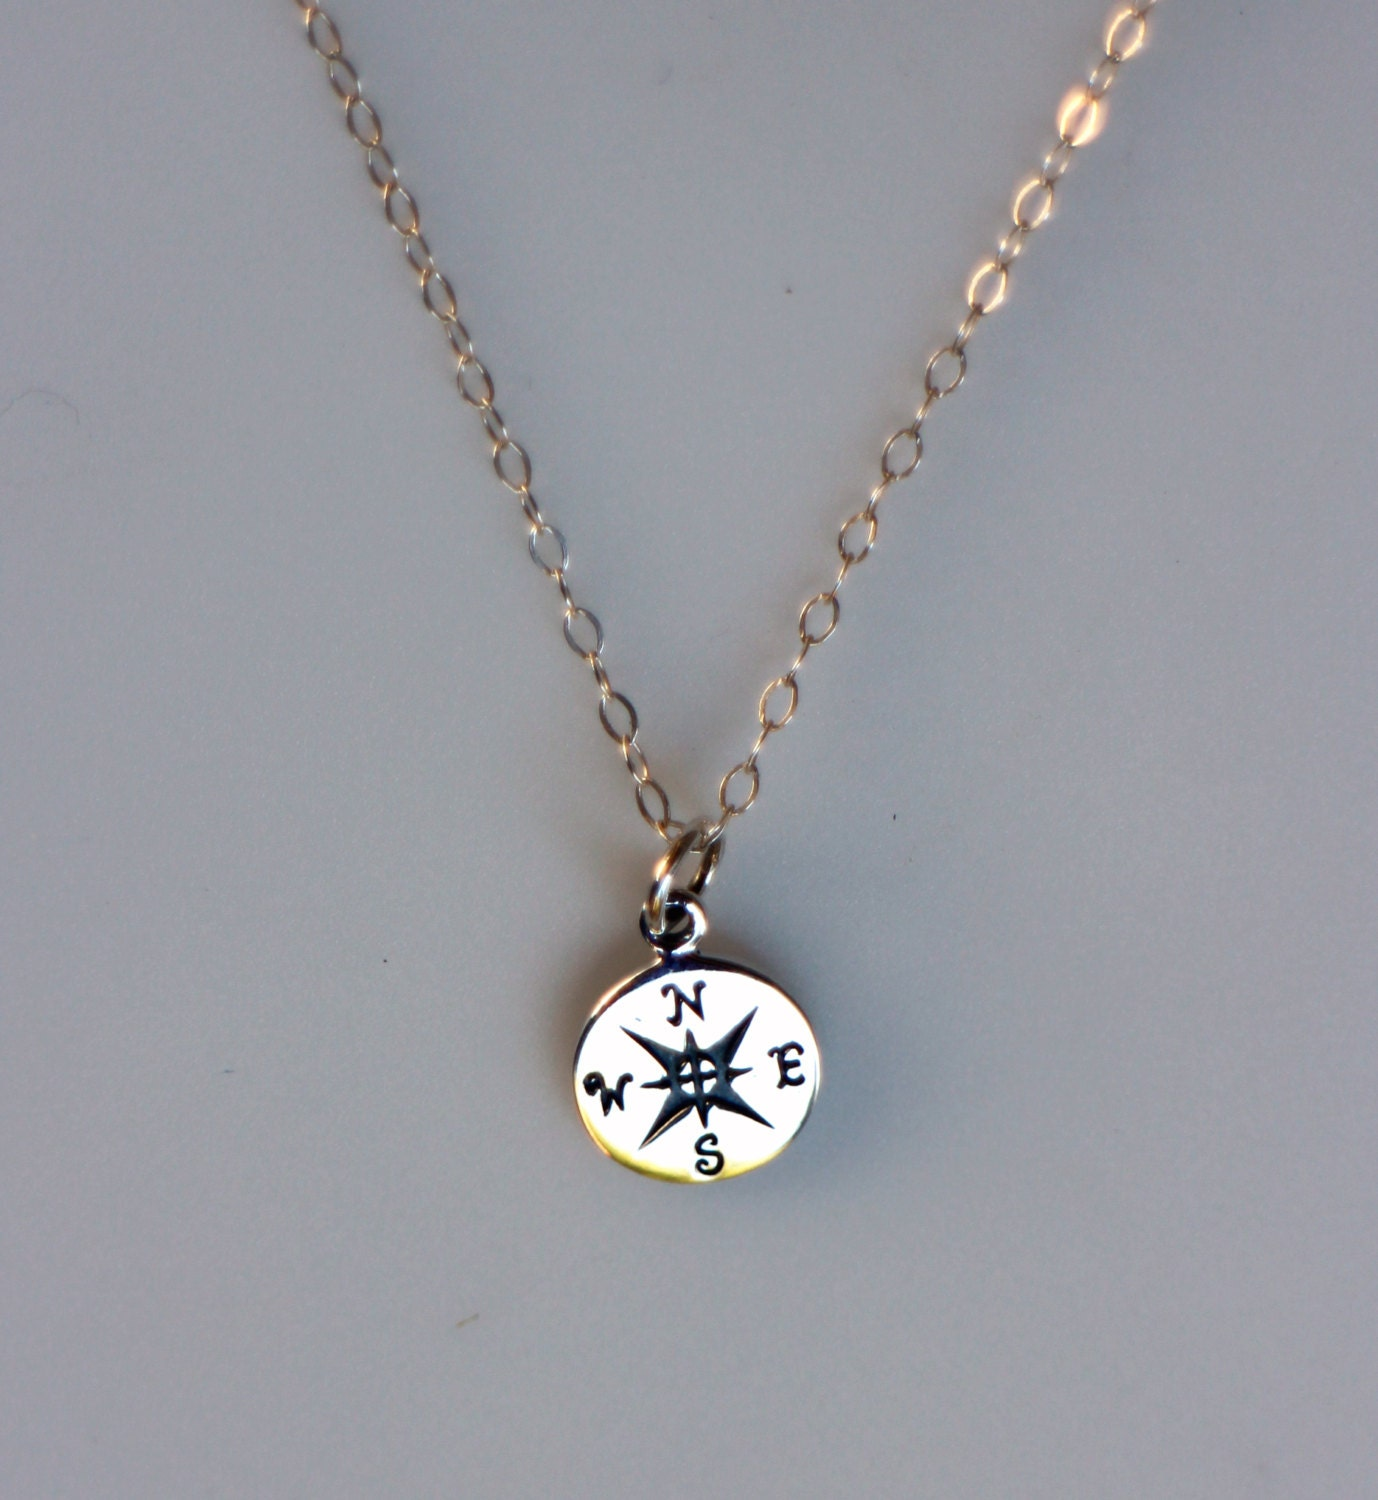 sterling silver compass graduation necklace journey necklace